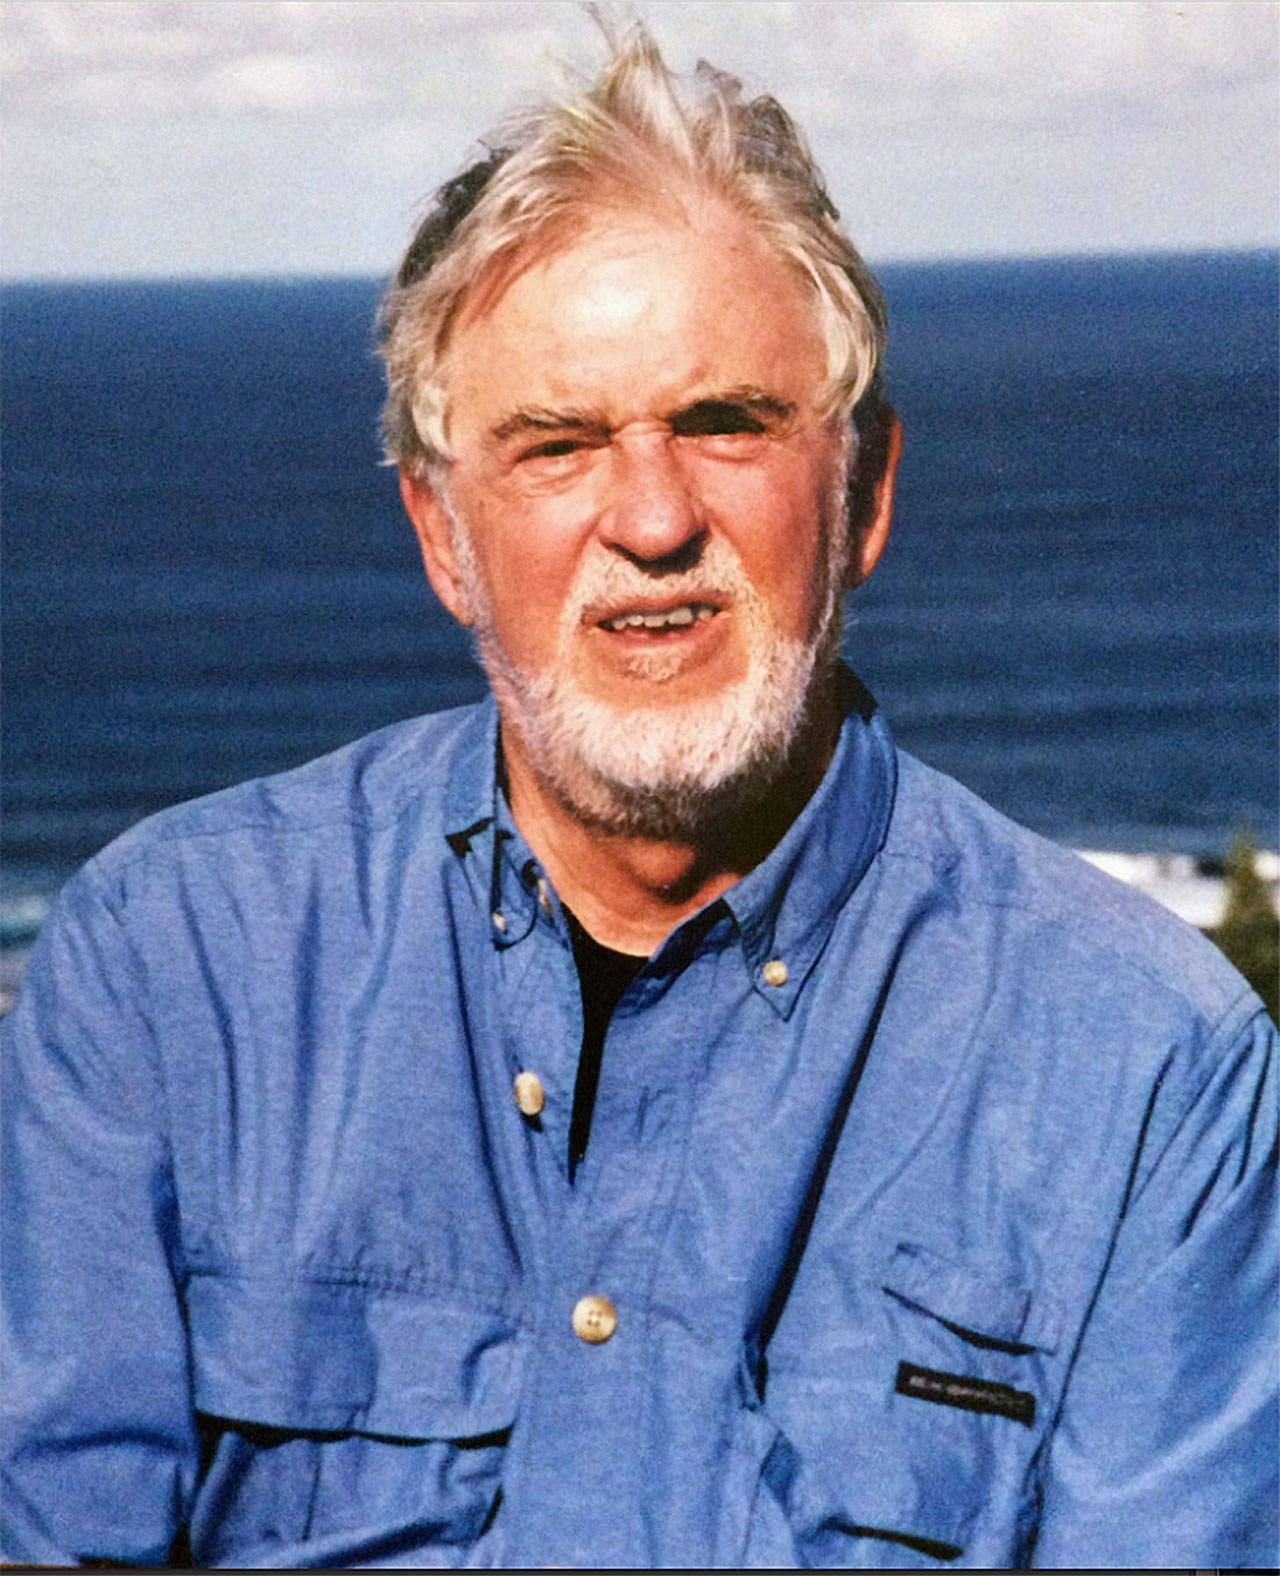 William Prochnau, an Everett native, one-time Everett Herald reporter, and renowned journalist and author, died March 28 at age 80. (Courtesy Laura Parker)